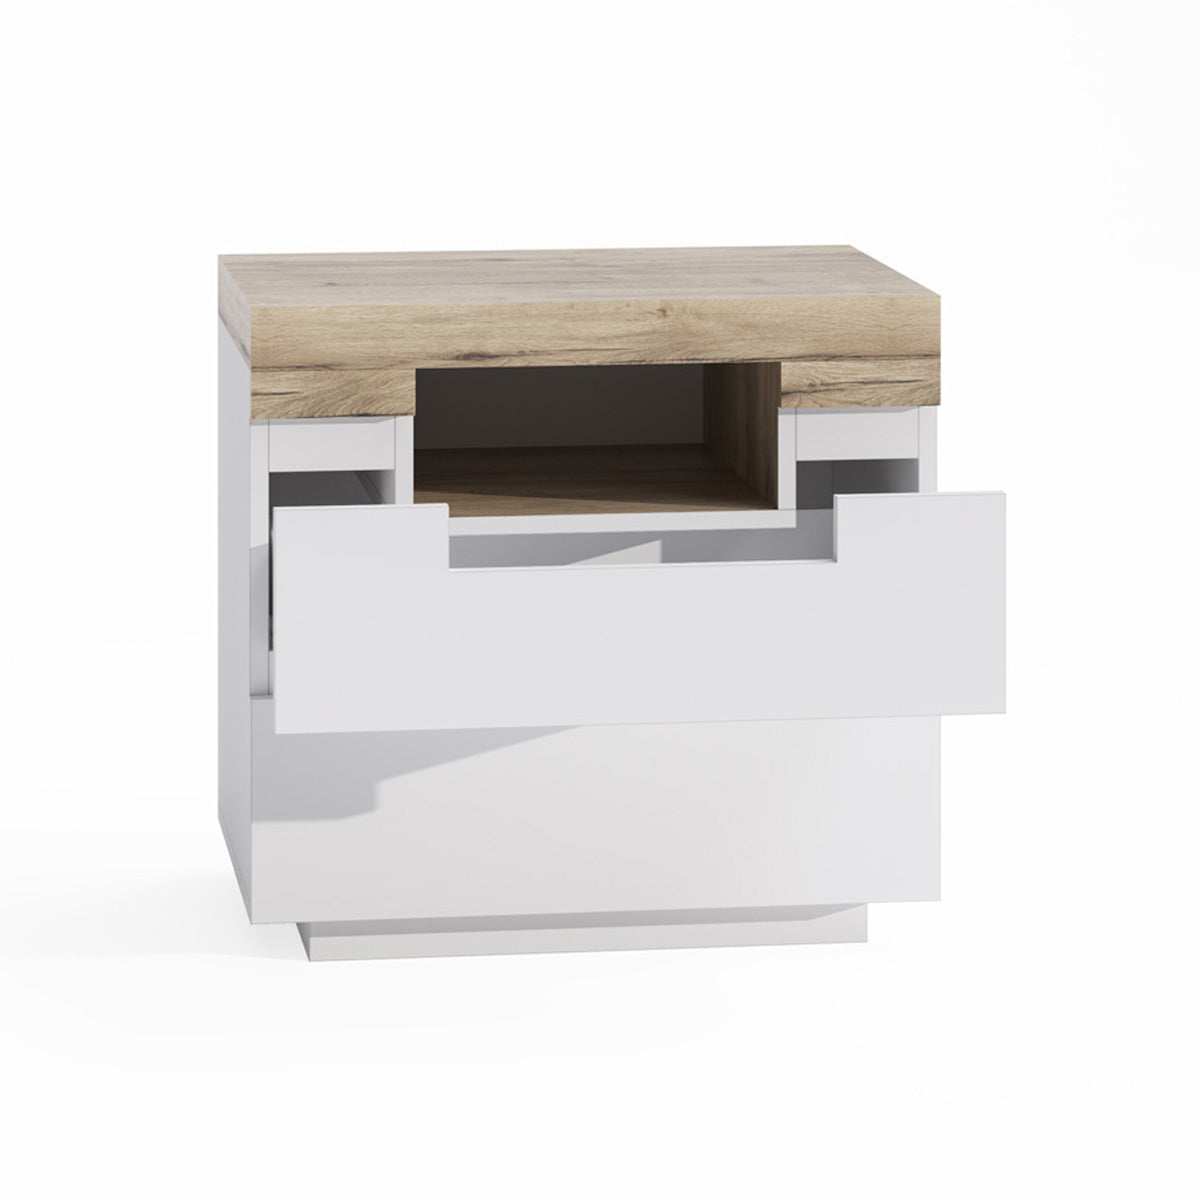 Wooden Bedside Table With White Drawers (Coogee Collection)